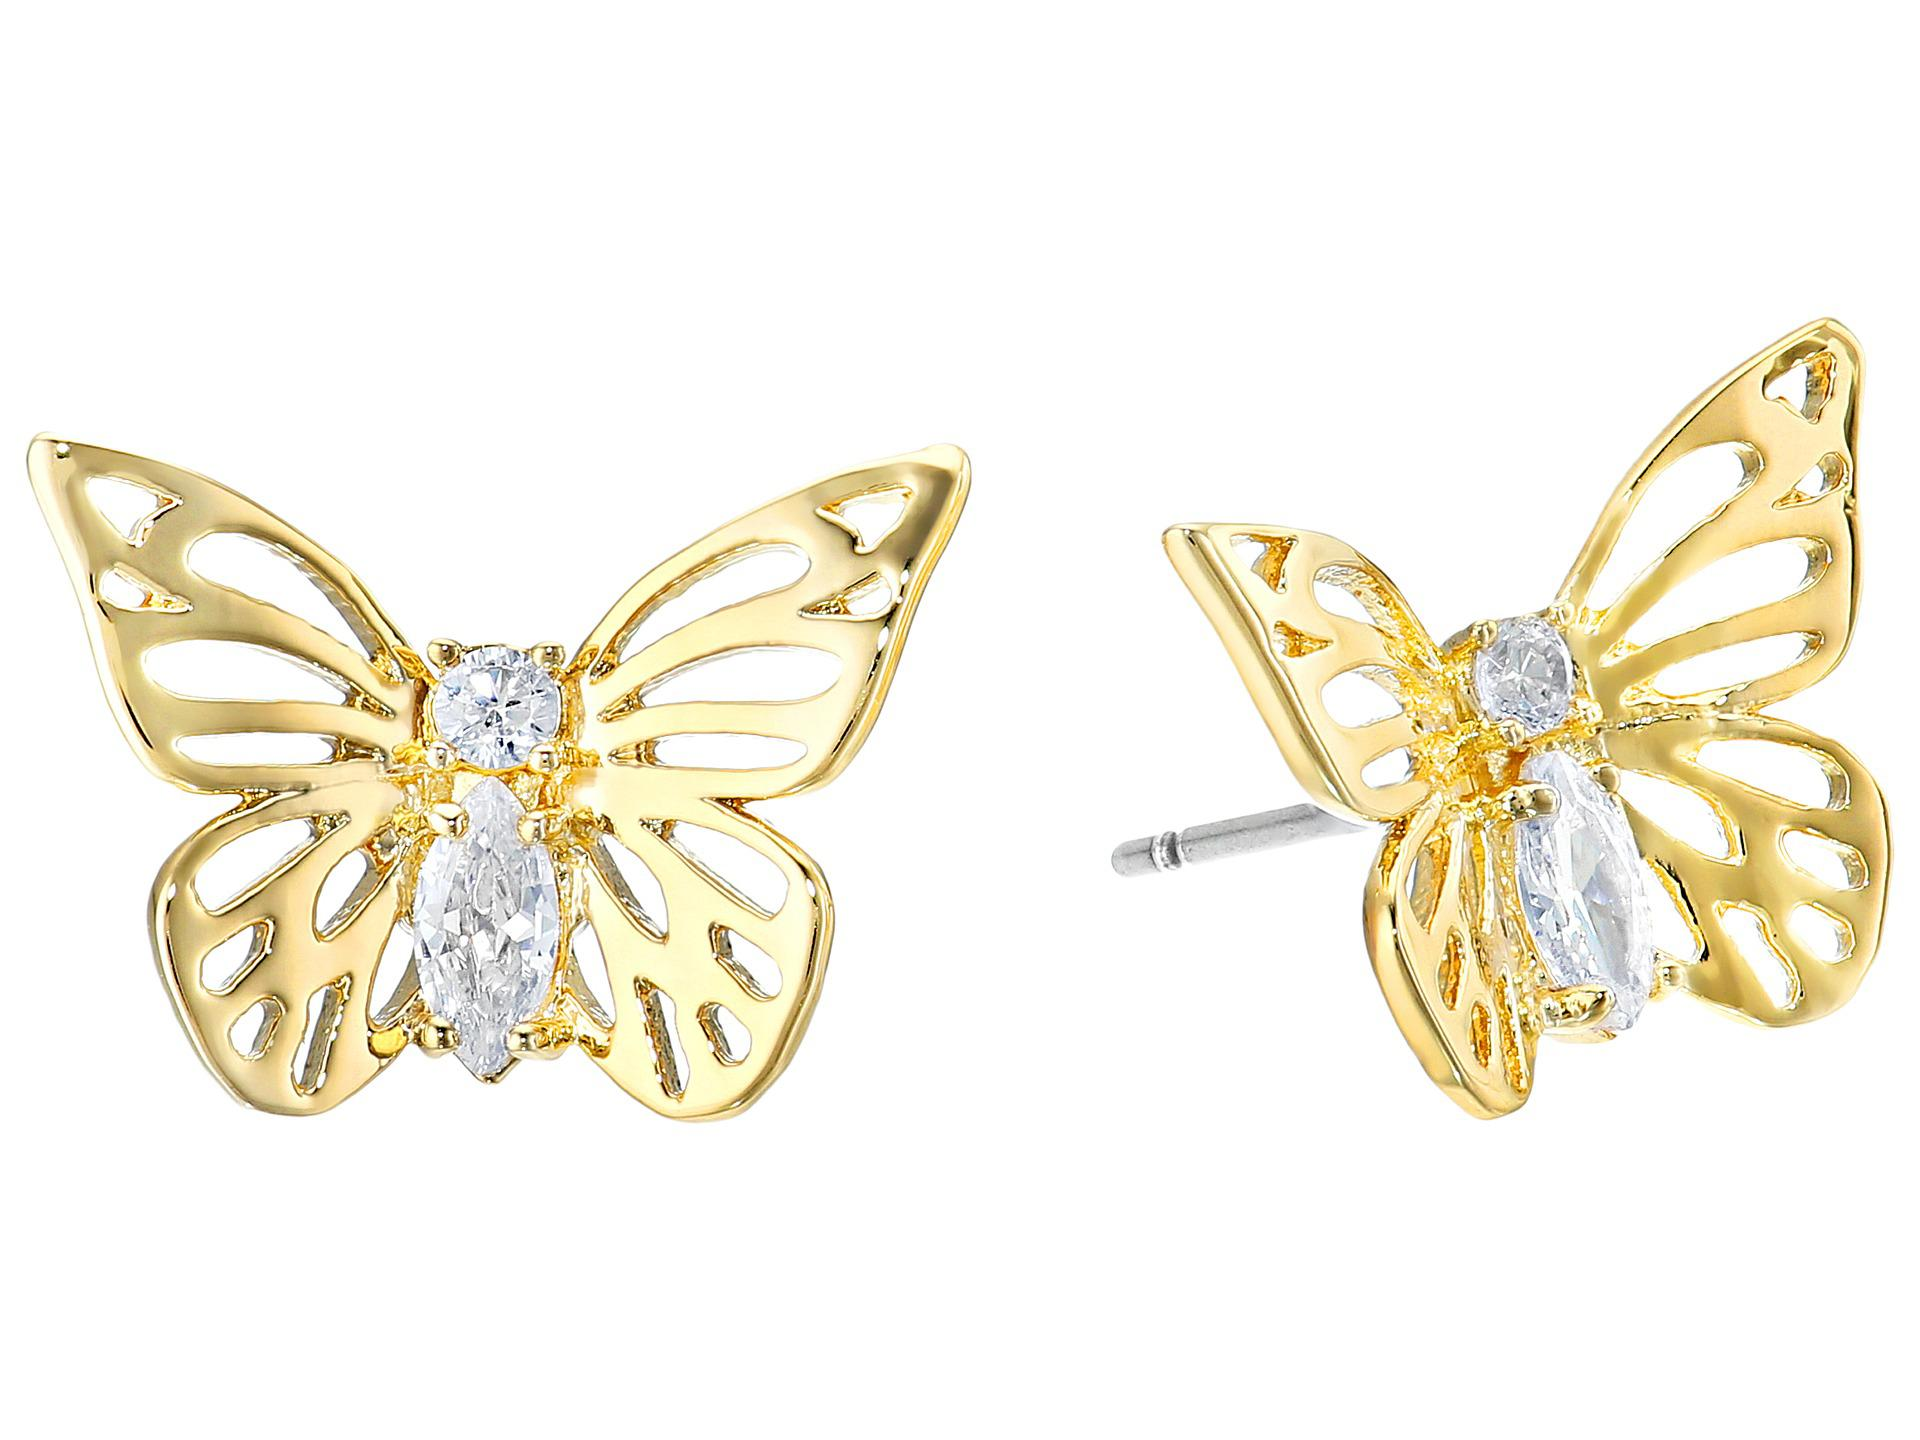 24b0cd24d80fc Lyst - Kate Spade Social Butterfly Stud Earrings in Metallic